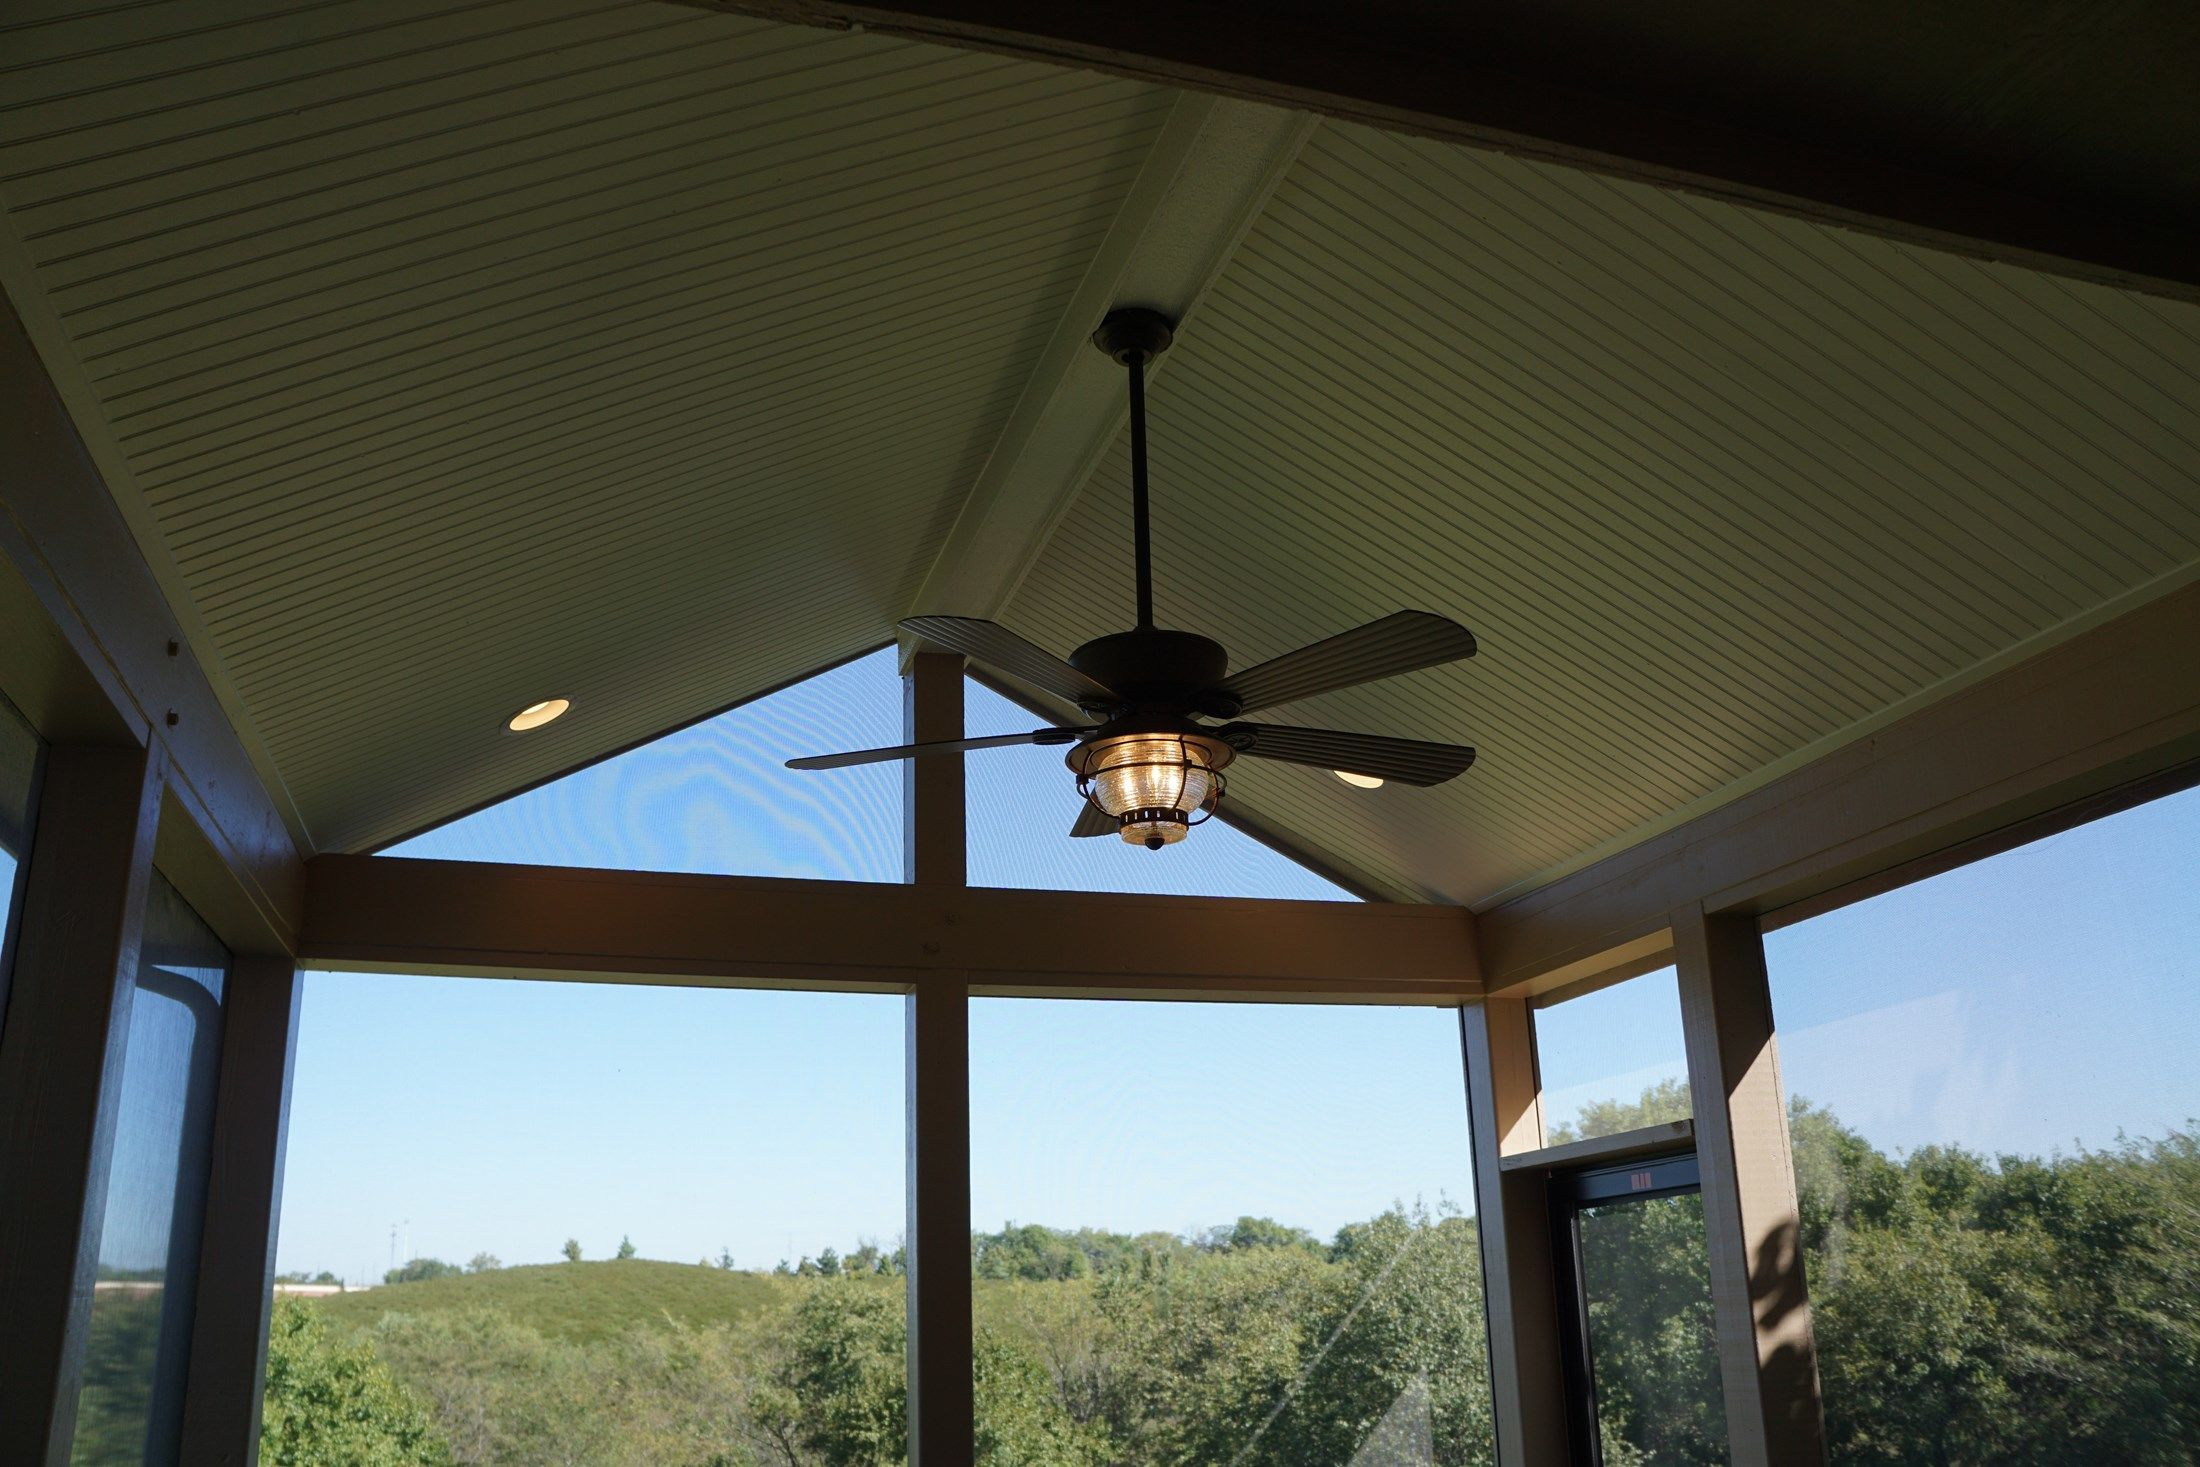 Gable Roof Screened Porch - Picture 5189